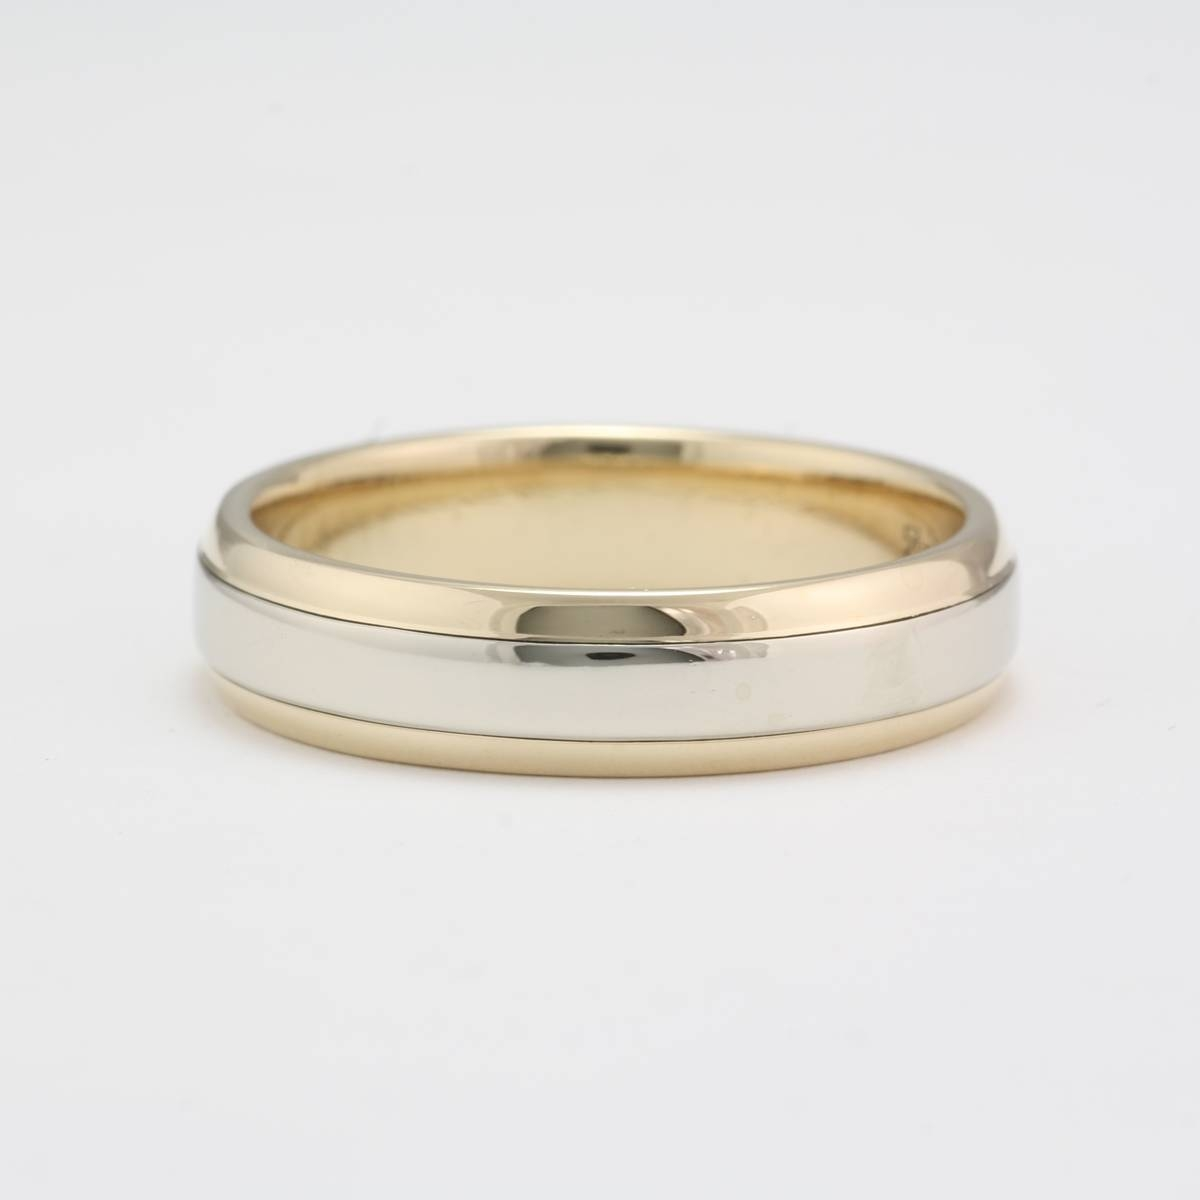 Owned 14 Karat White And Yellow Gold Wedding Band Throughout 14 Karat Gold Wedding Bands (View 12 of 15)